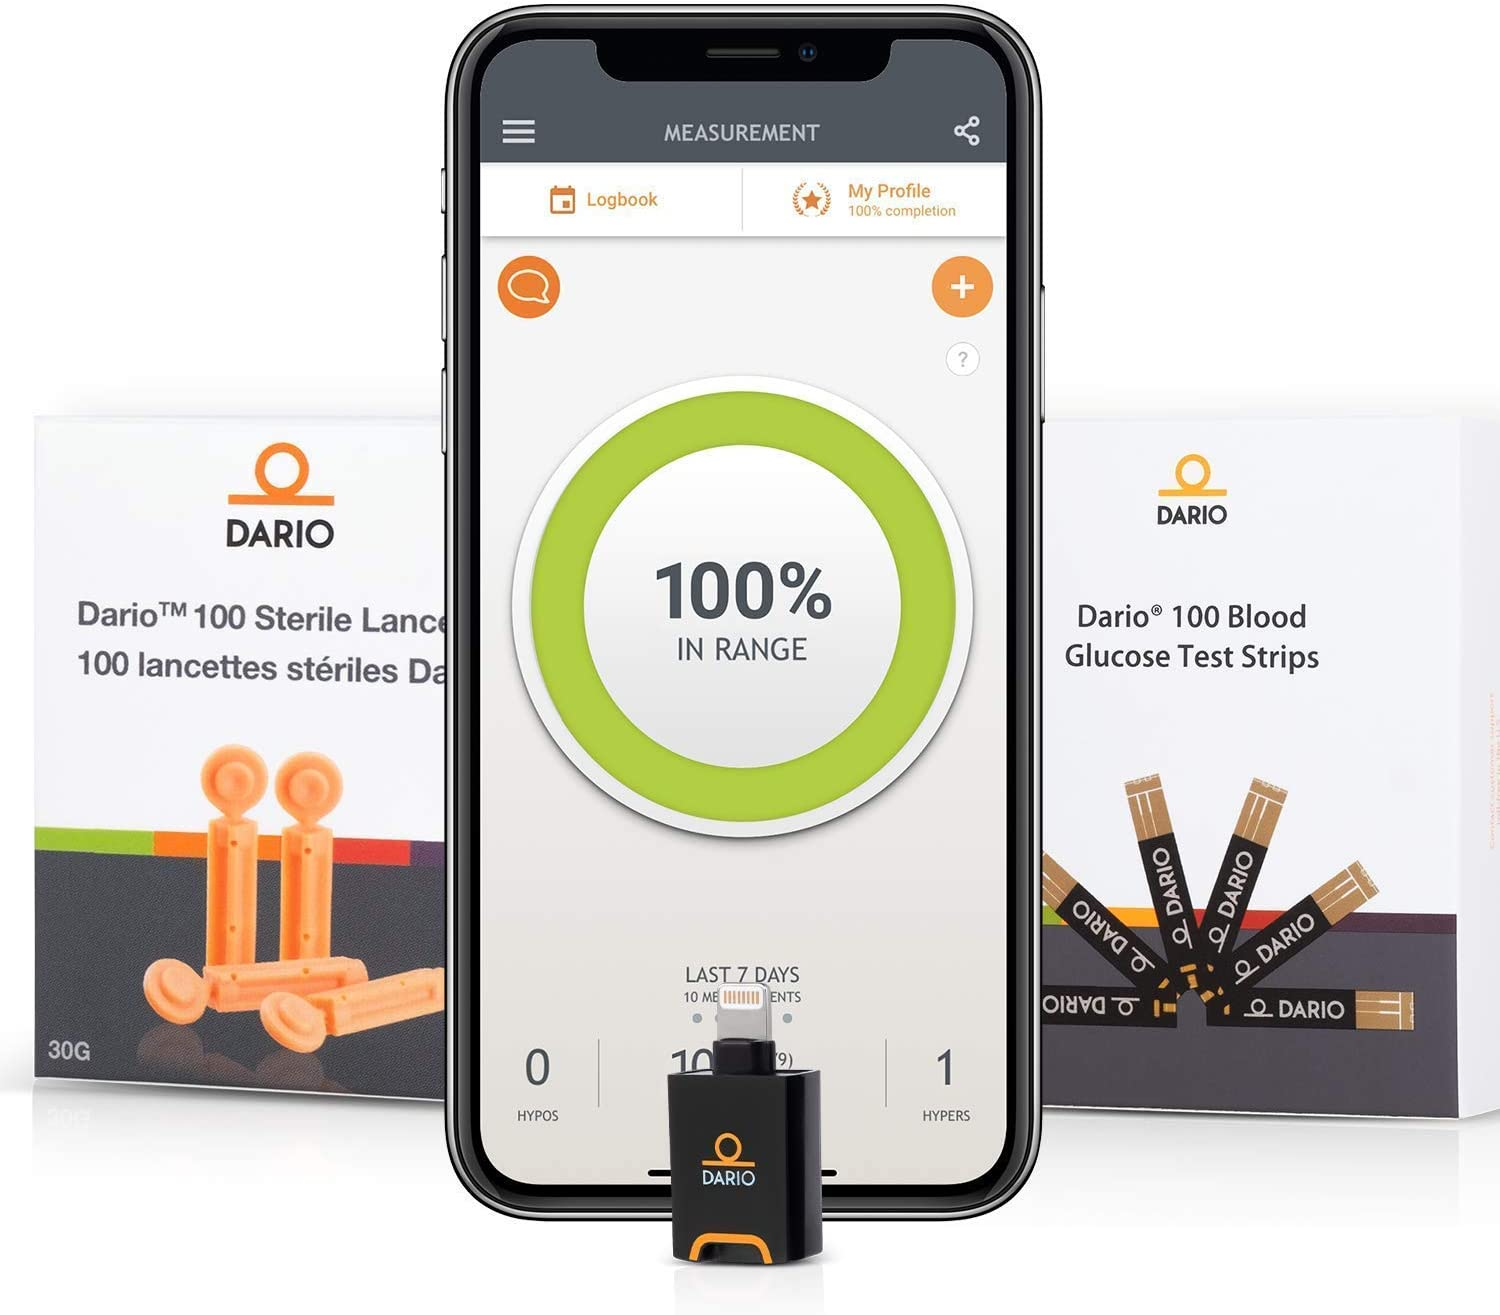 Bundle & Save Dario Diabetes Blood Glucose Meter Kit. Test Blood Sugar Estimate A1c. All-in-One Smart Blood Sugar Monitor + 125 Strips + 110 Sterile lancets (iPhone Only)